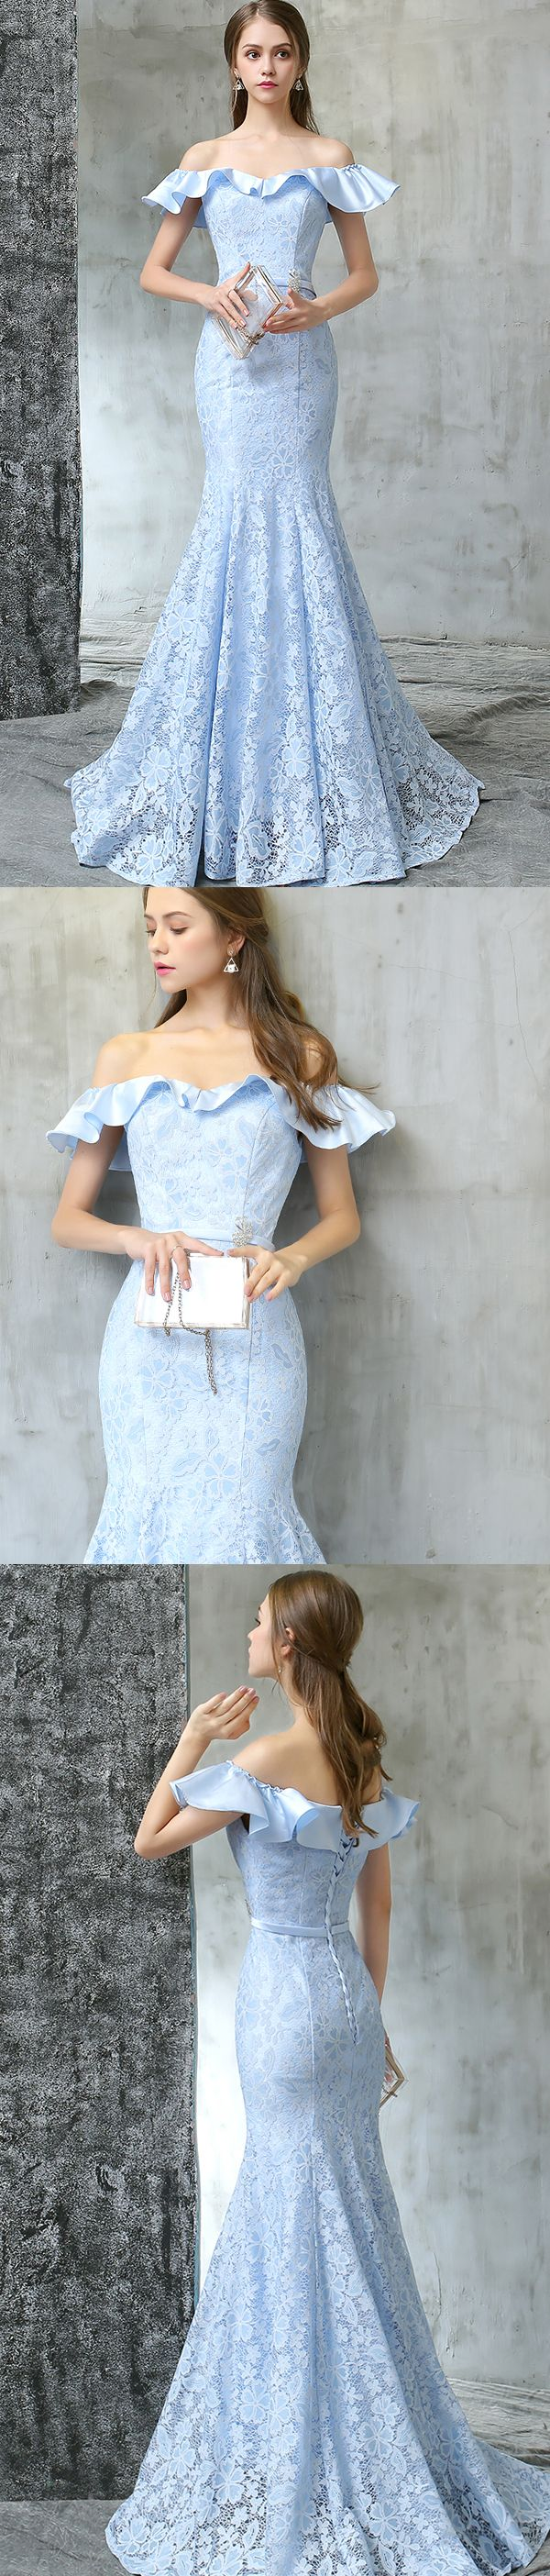 Off Shoulder | wavy top | Mermaid dress| baby blue | lace |